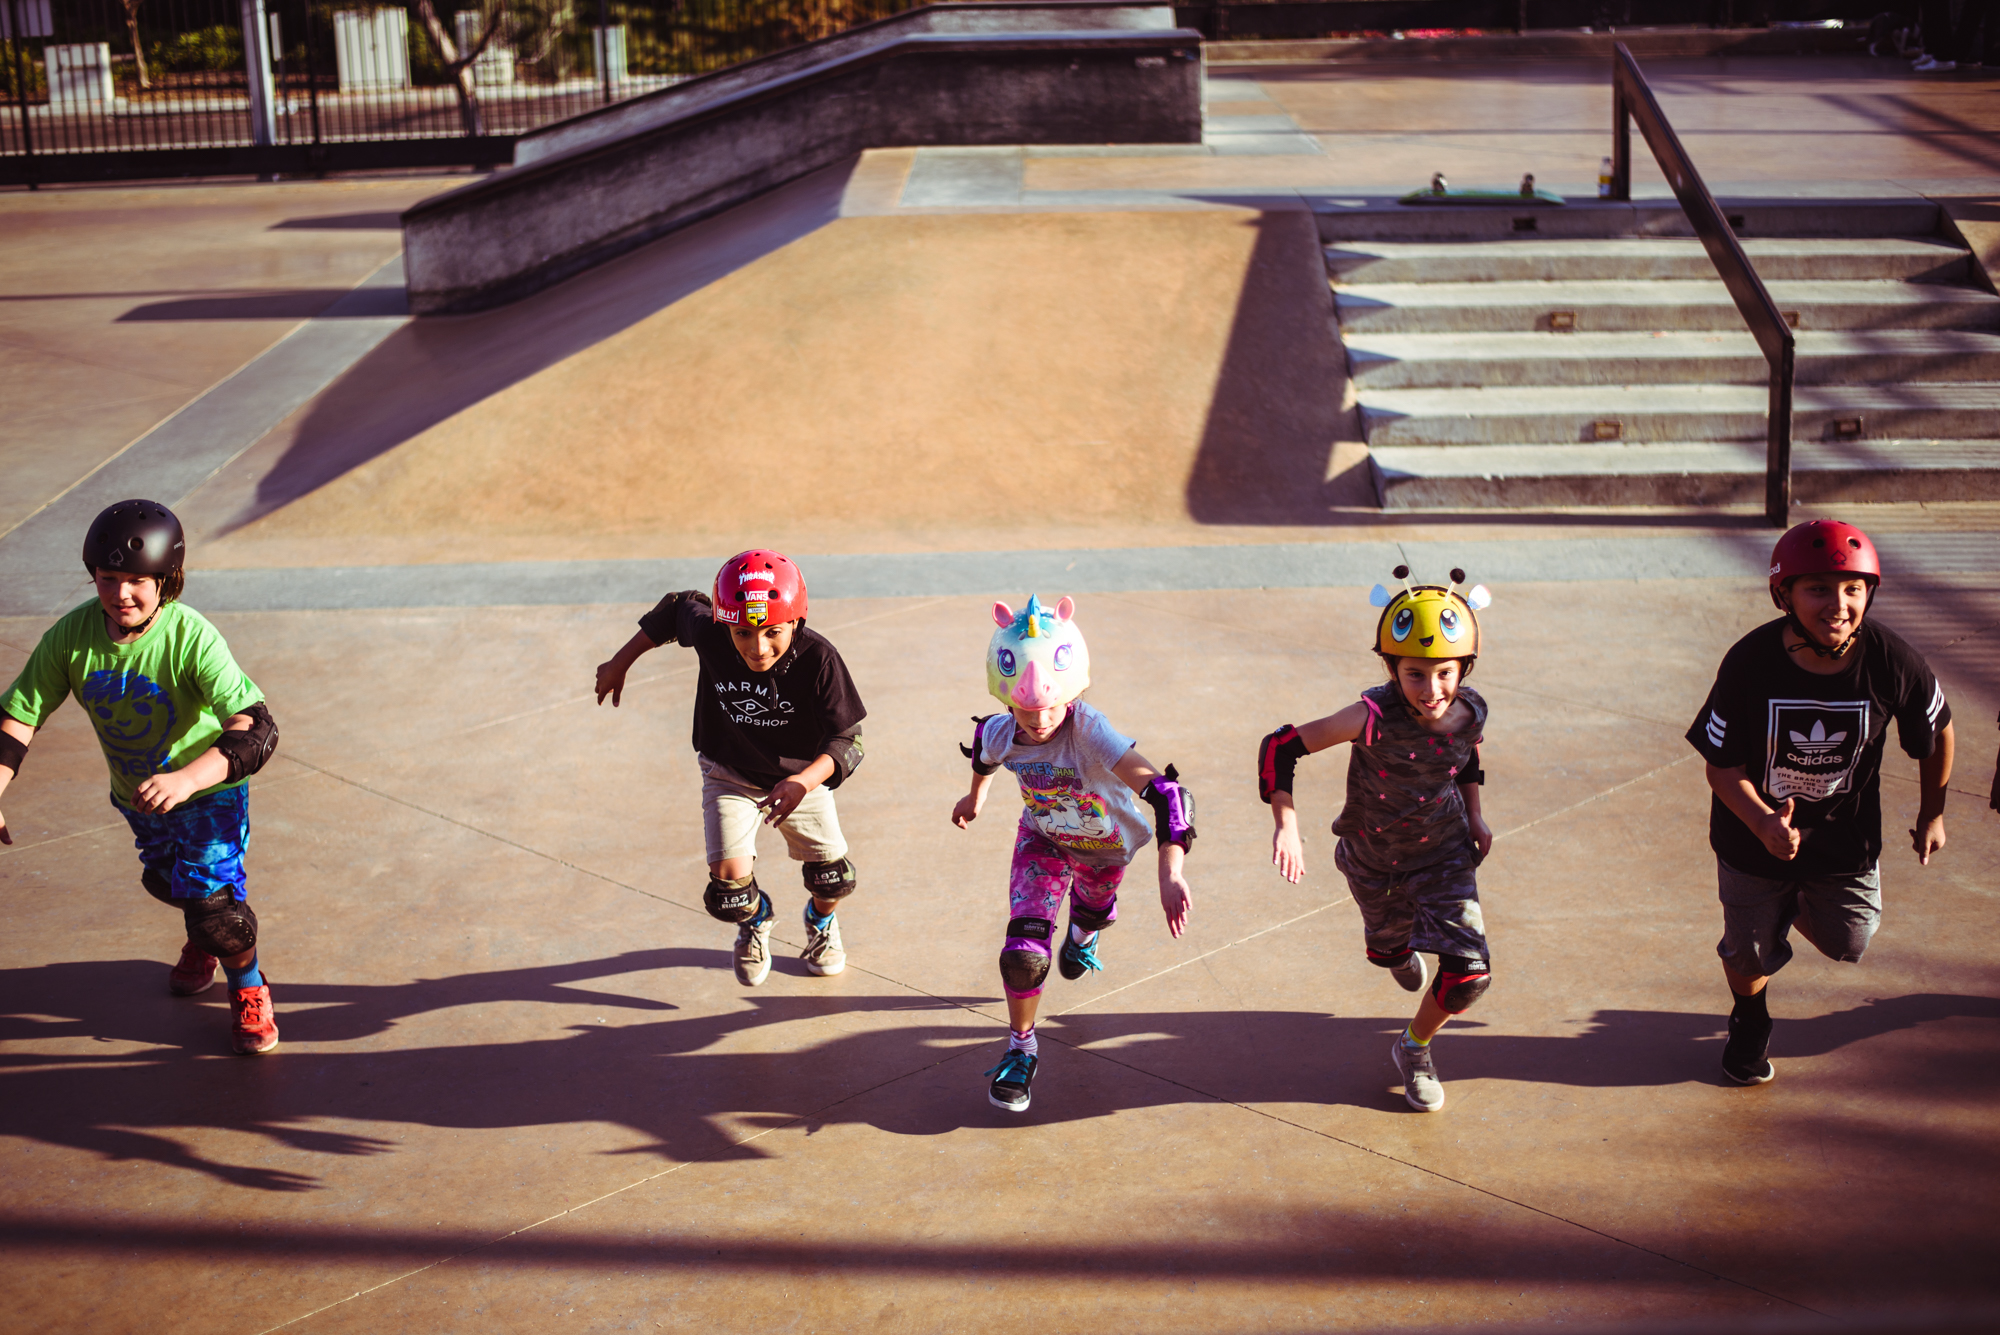 Skateboard Birthday Party-28.jpg